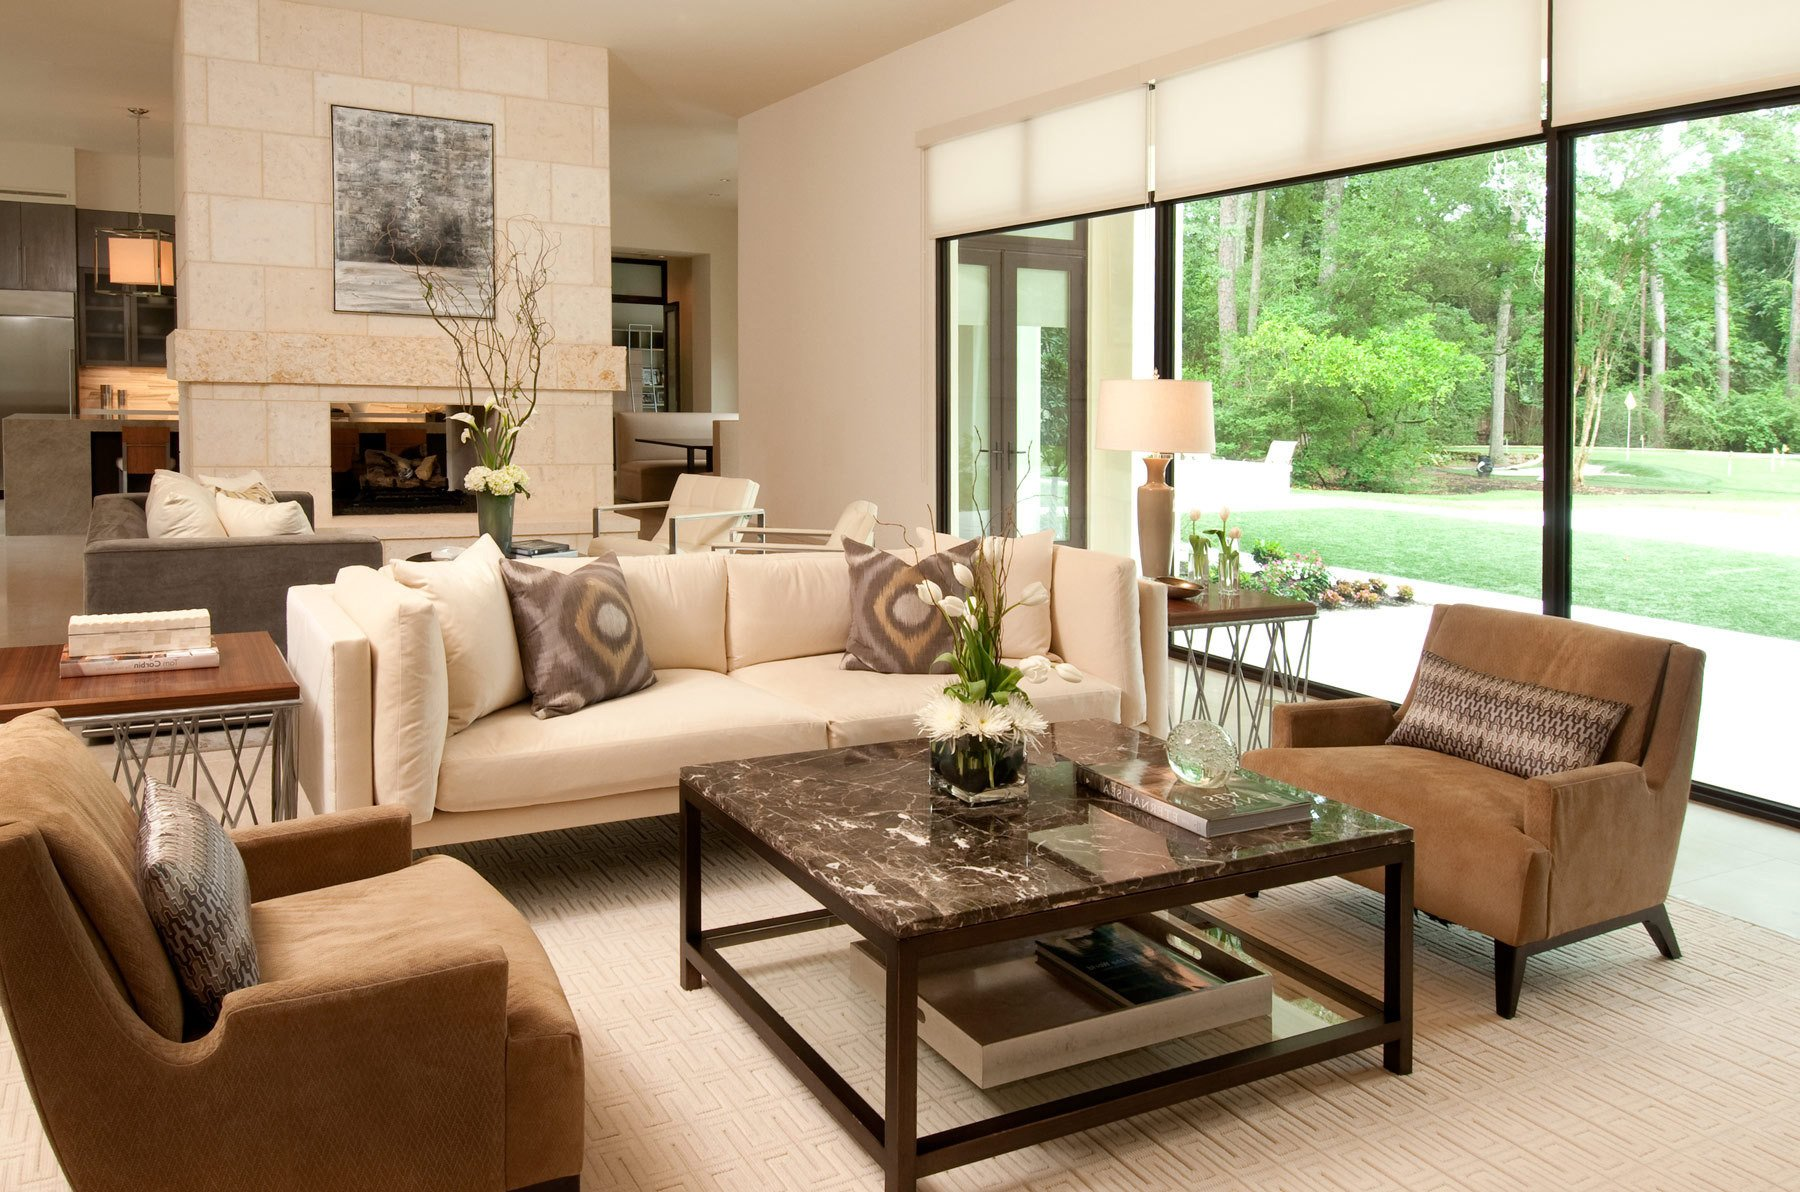 Comfortable Living Room Ideas Inspirational 30 Beautiful Fy Living Room Design Ideas Decoration Love